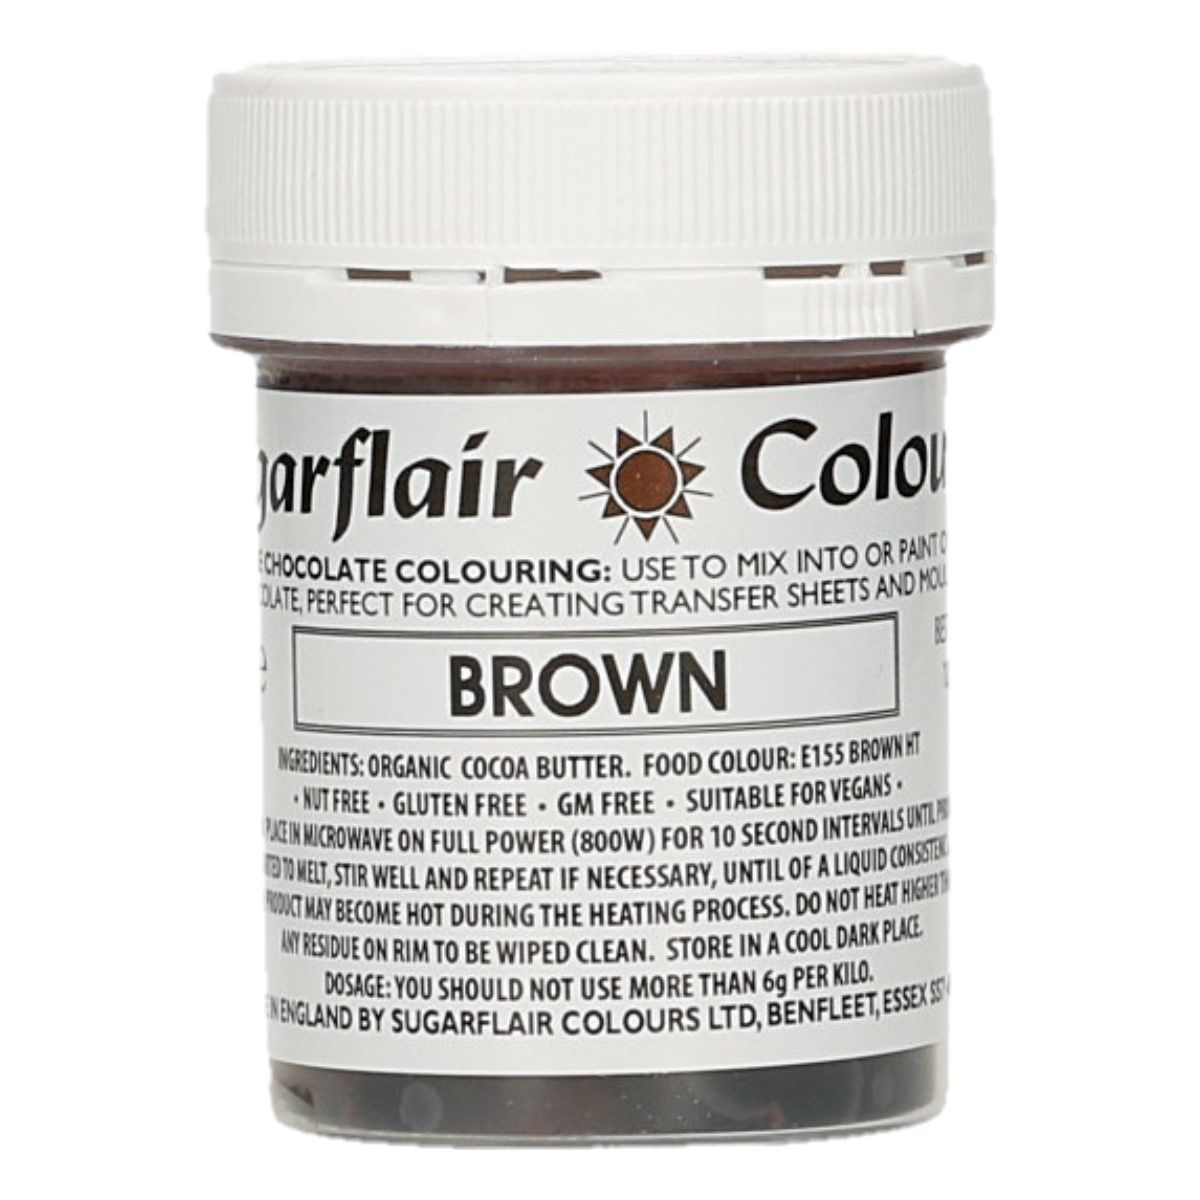 Sugarflair Chocolate Colour Brown 35g